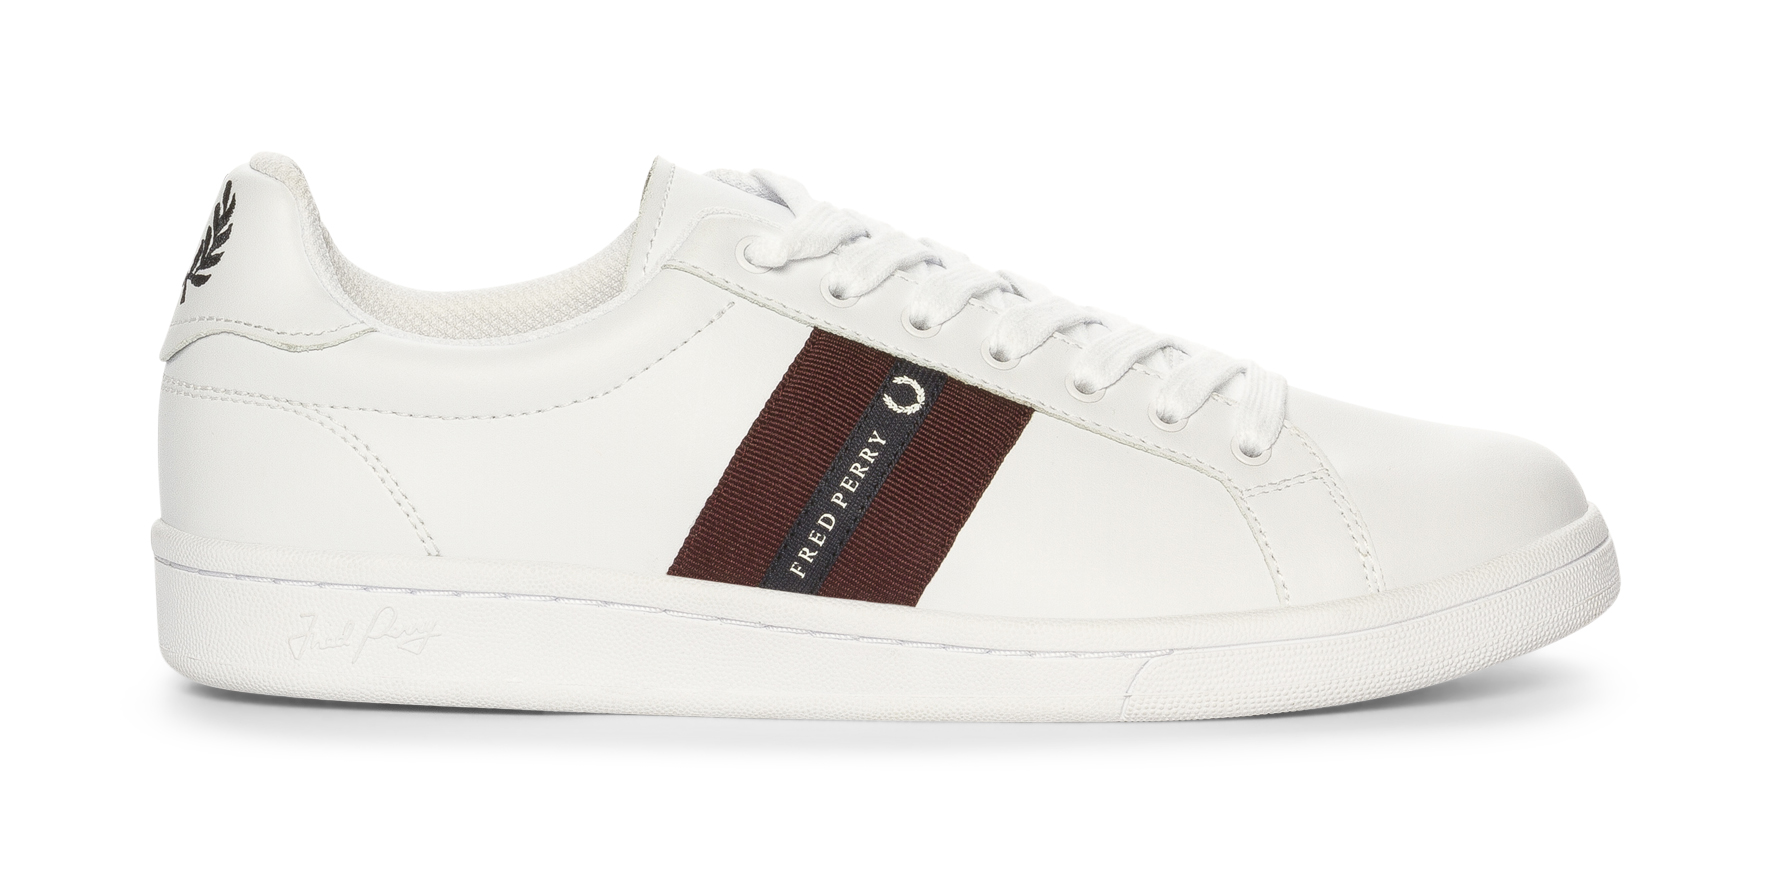 79bb36419c61 Fred Perry B721 Leather Tape - Hvit